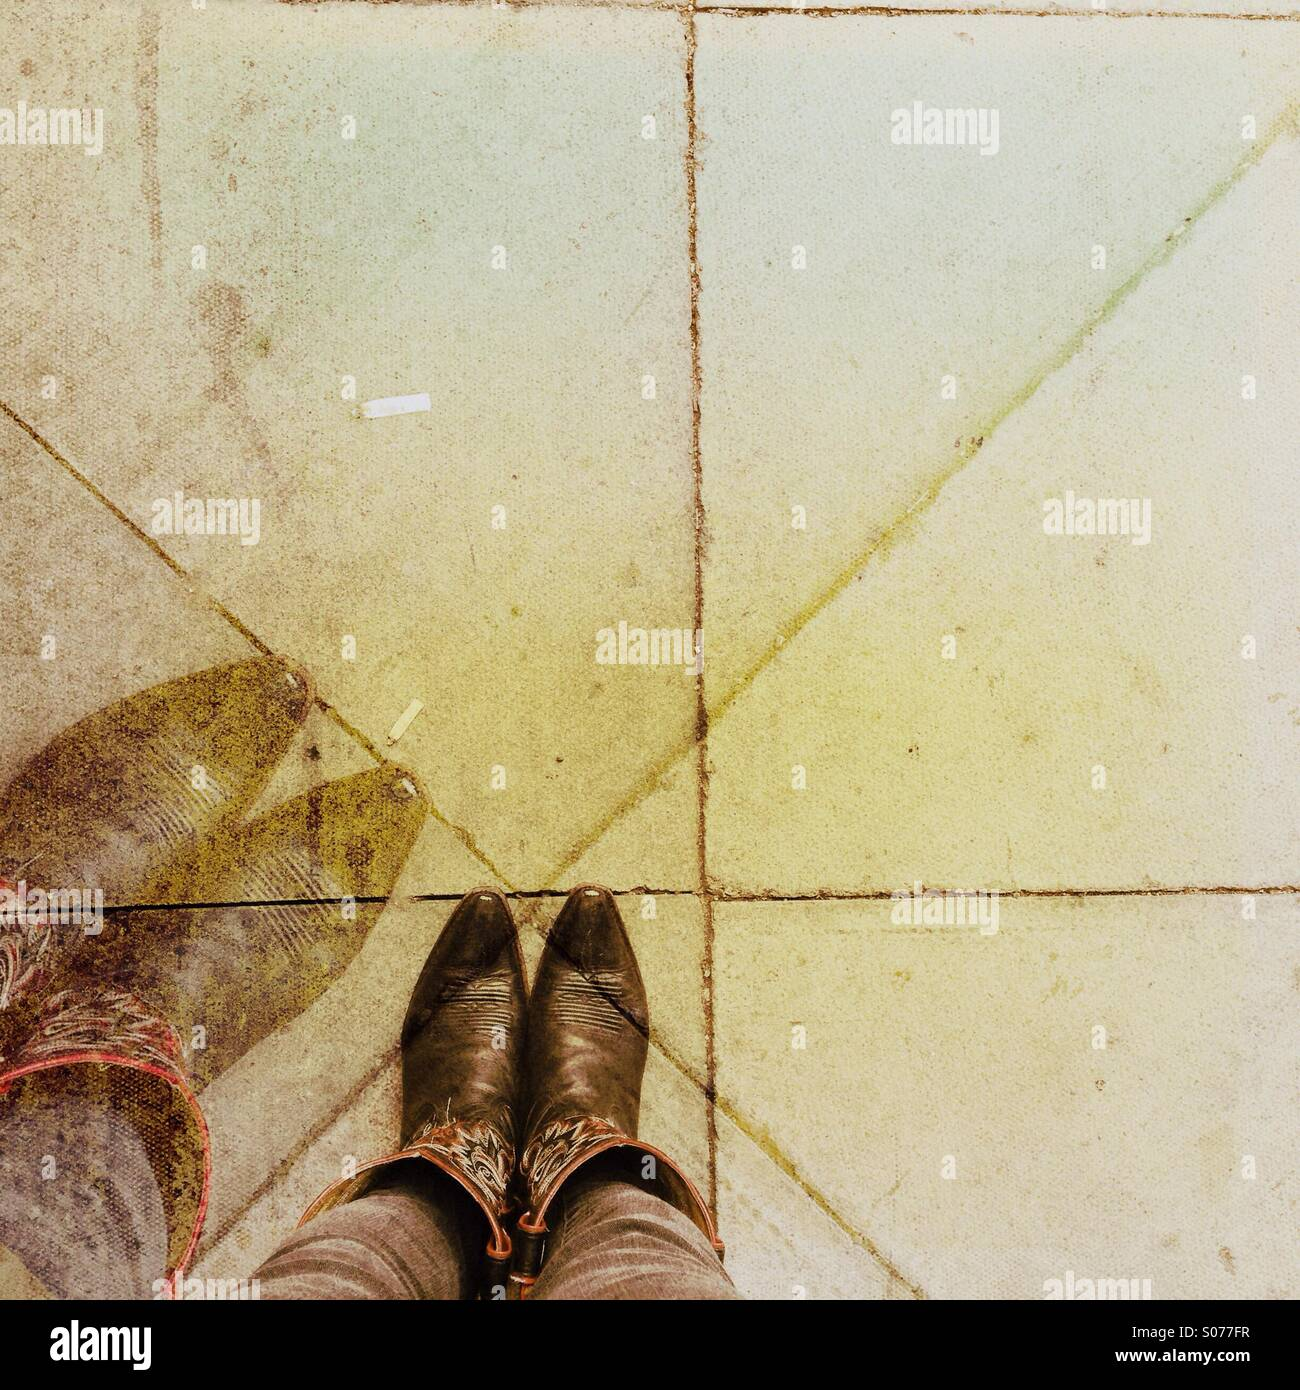 Cowboy boots - Stock Image